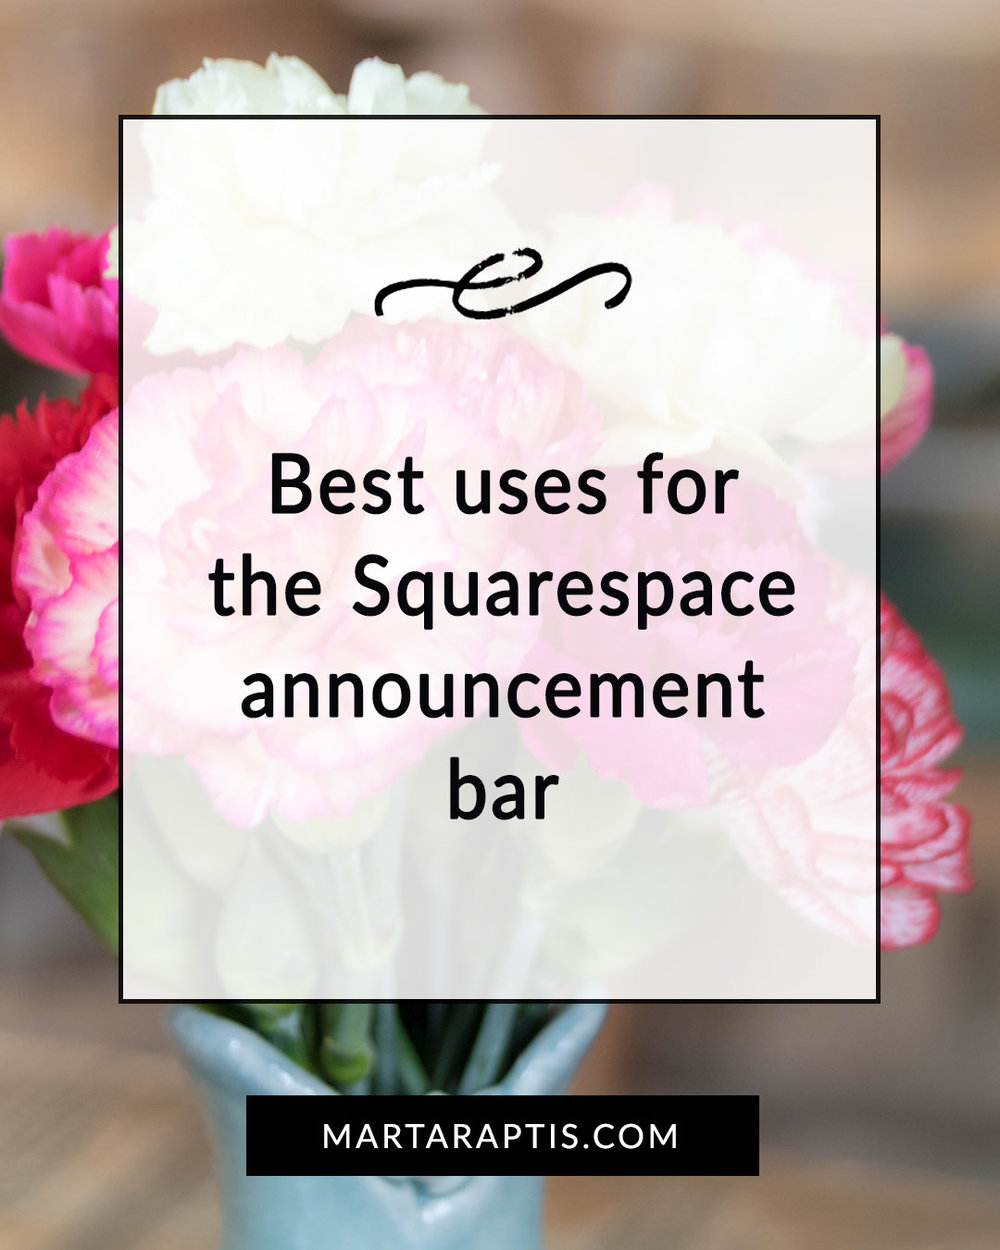 Best uses for the Squarespace announcement bar